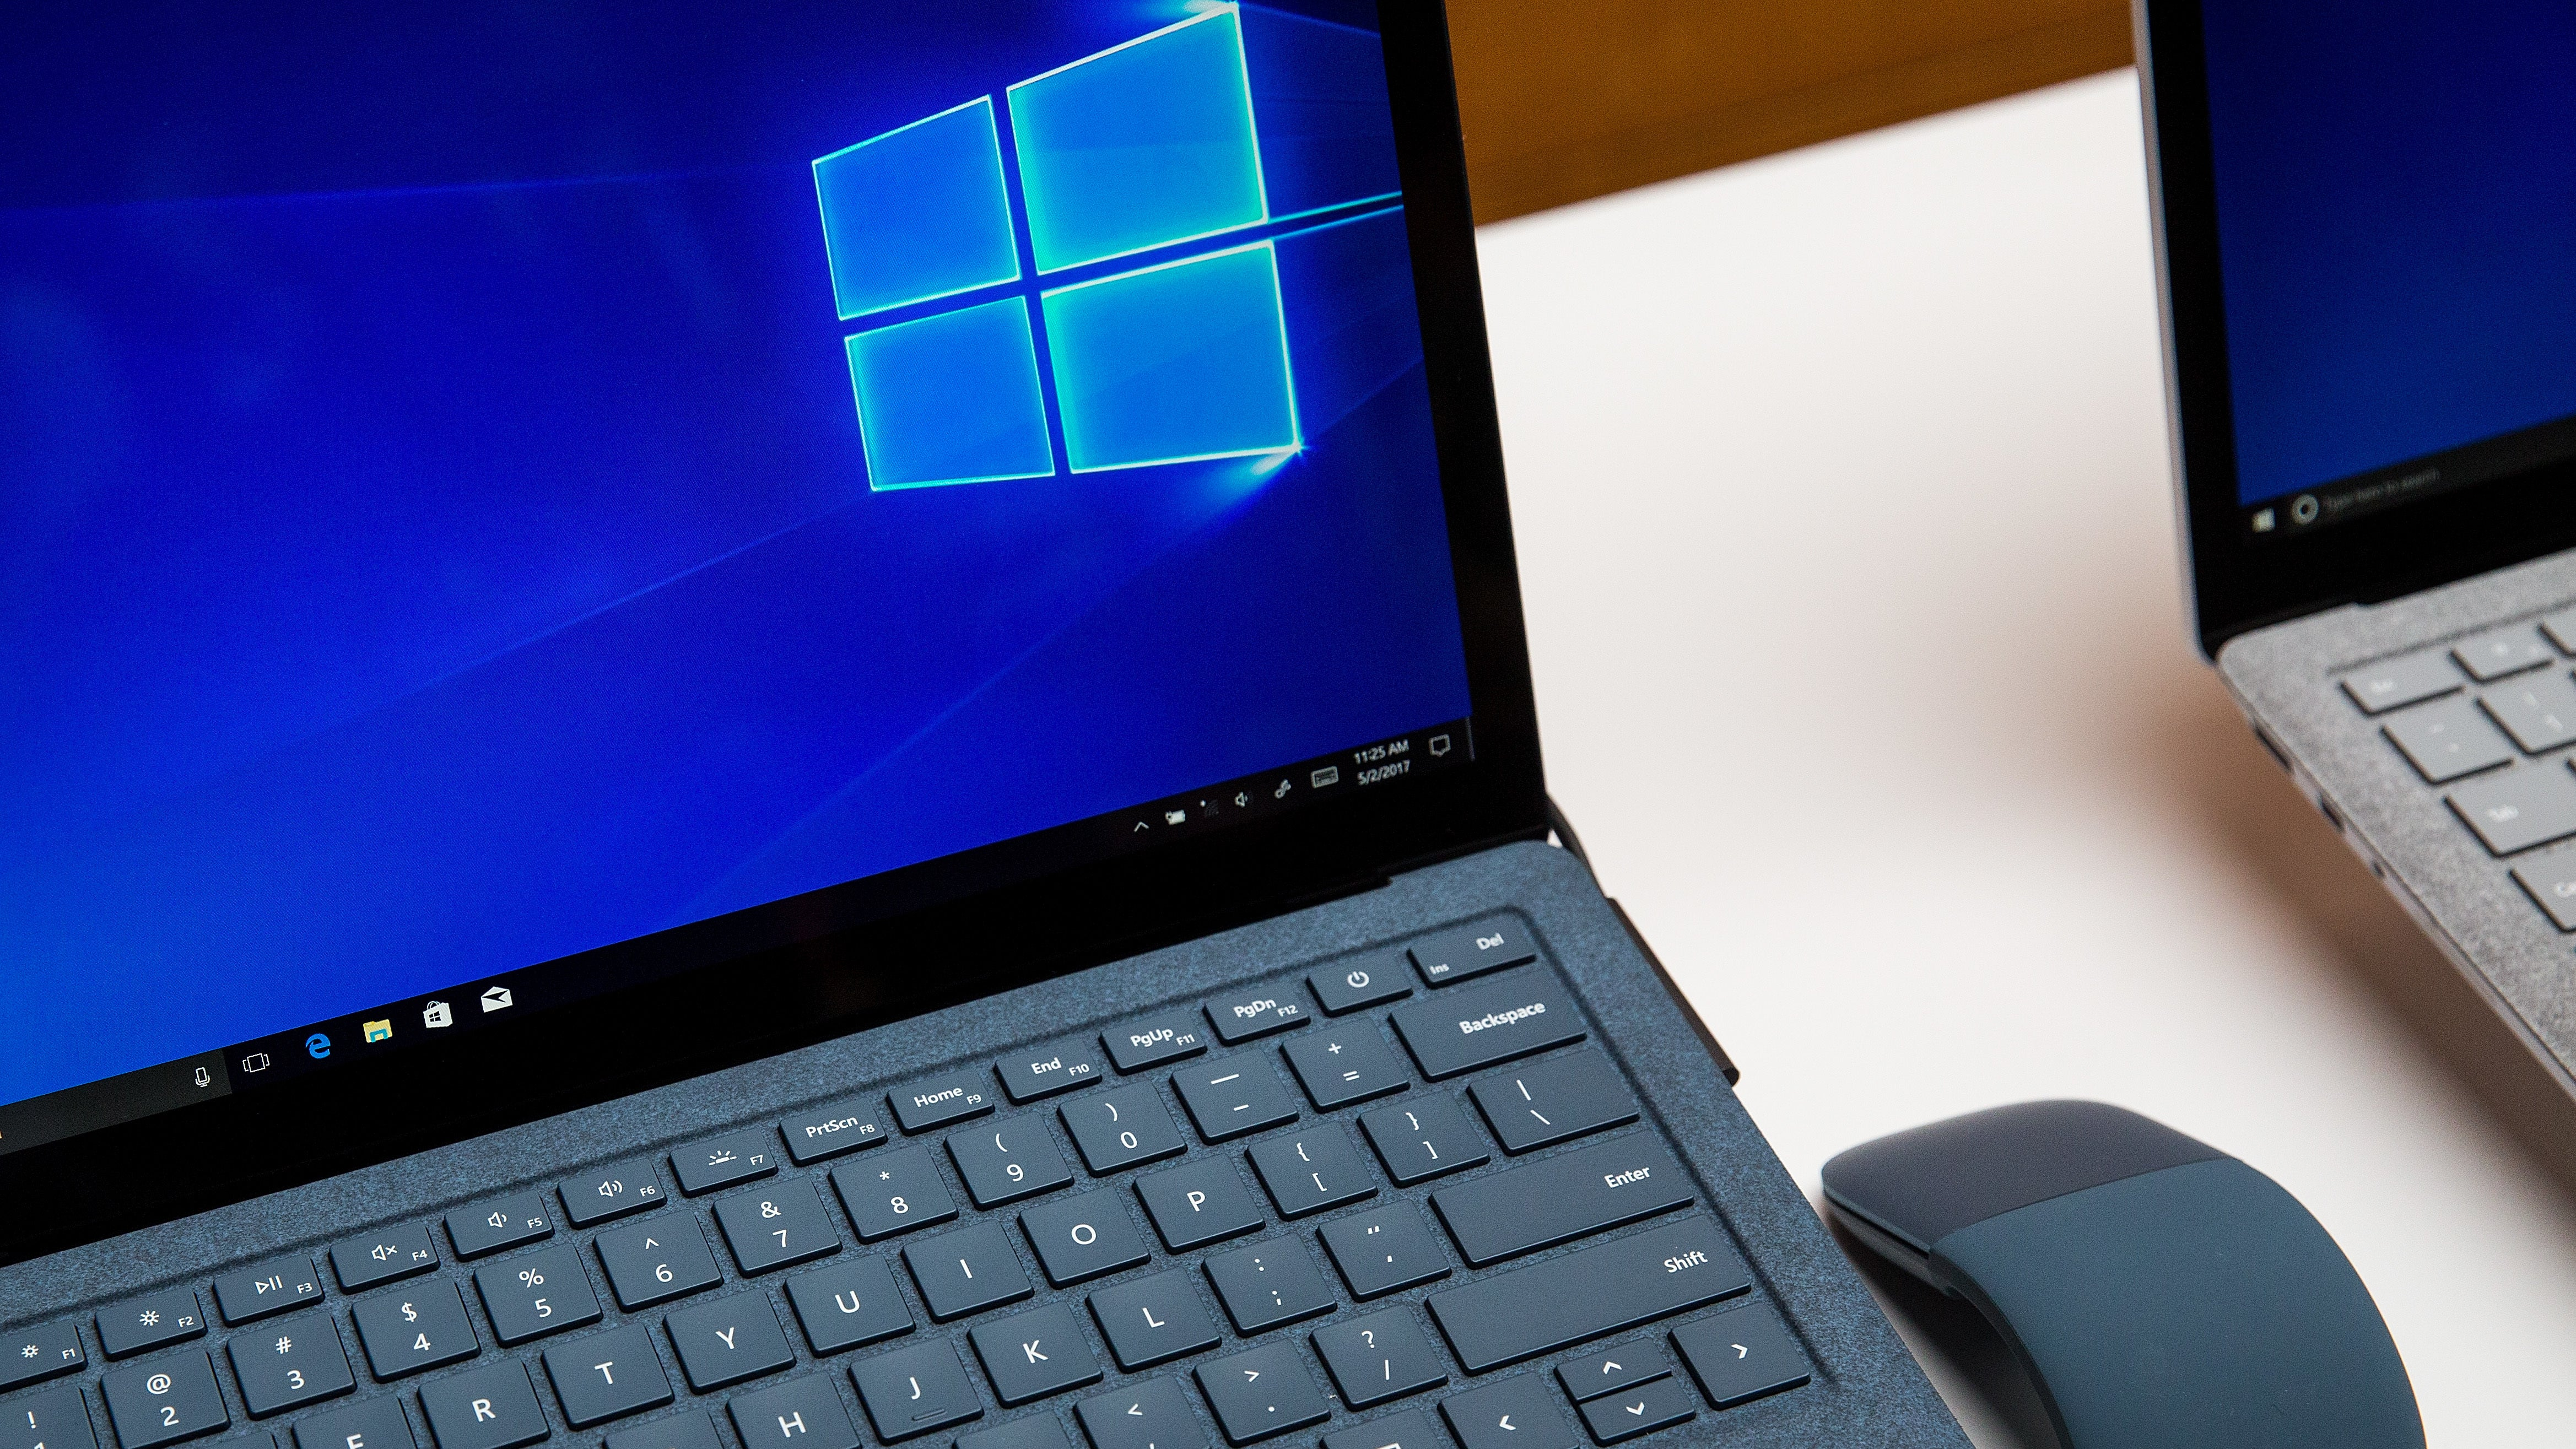 The Next Windows 10 Update Is On Hold Thanks To A Bug